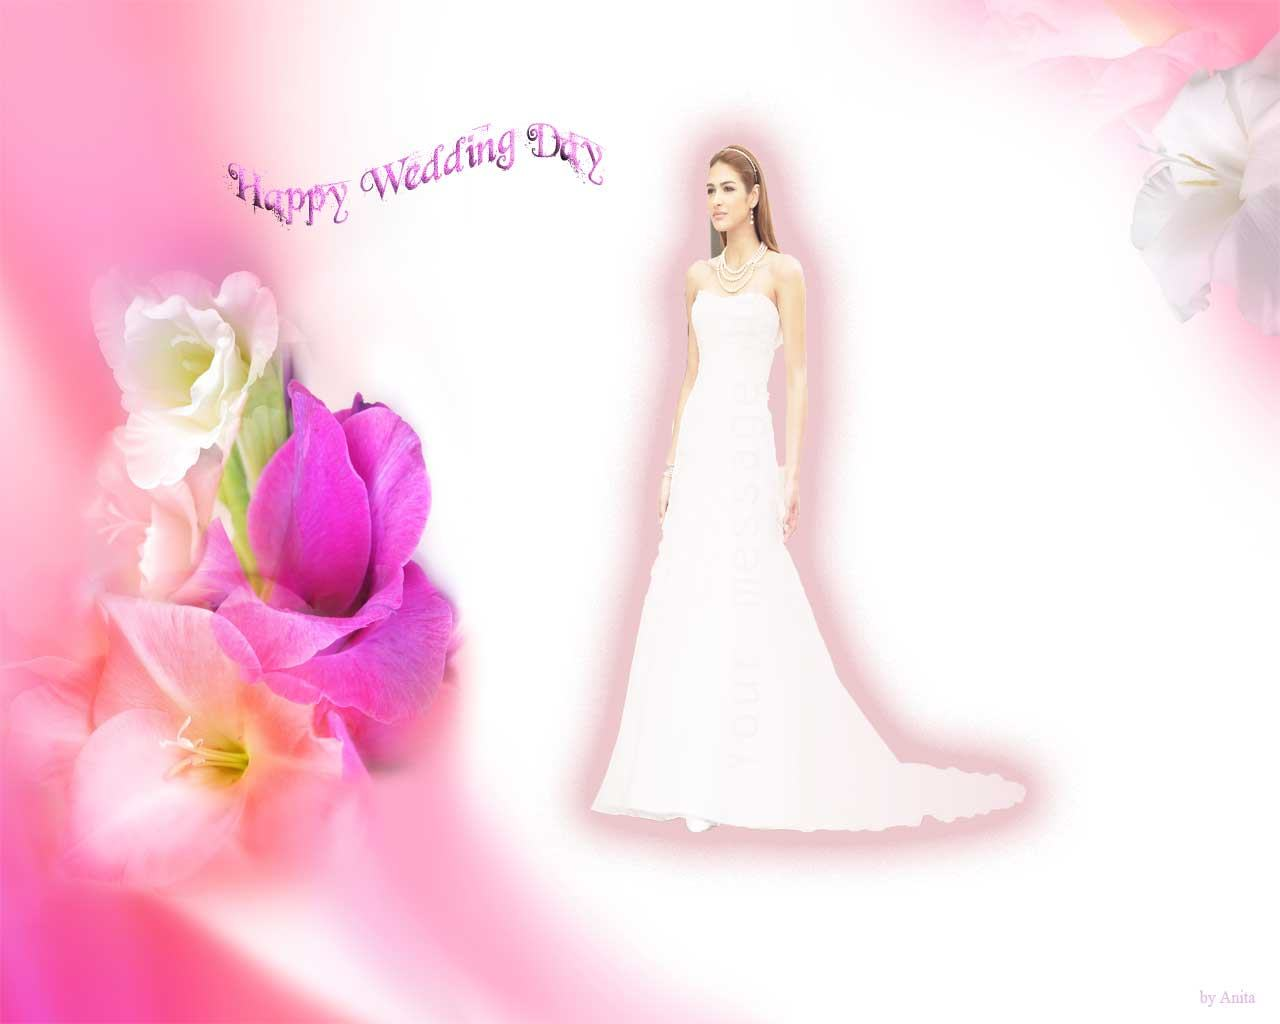 Wallpapers Backgrounds   Happy Wedding Day Greeting Cards Wallpaper 1280x1024